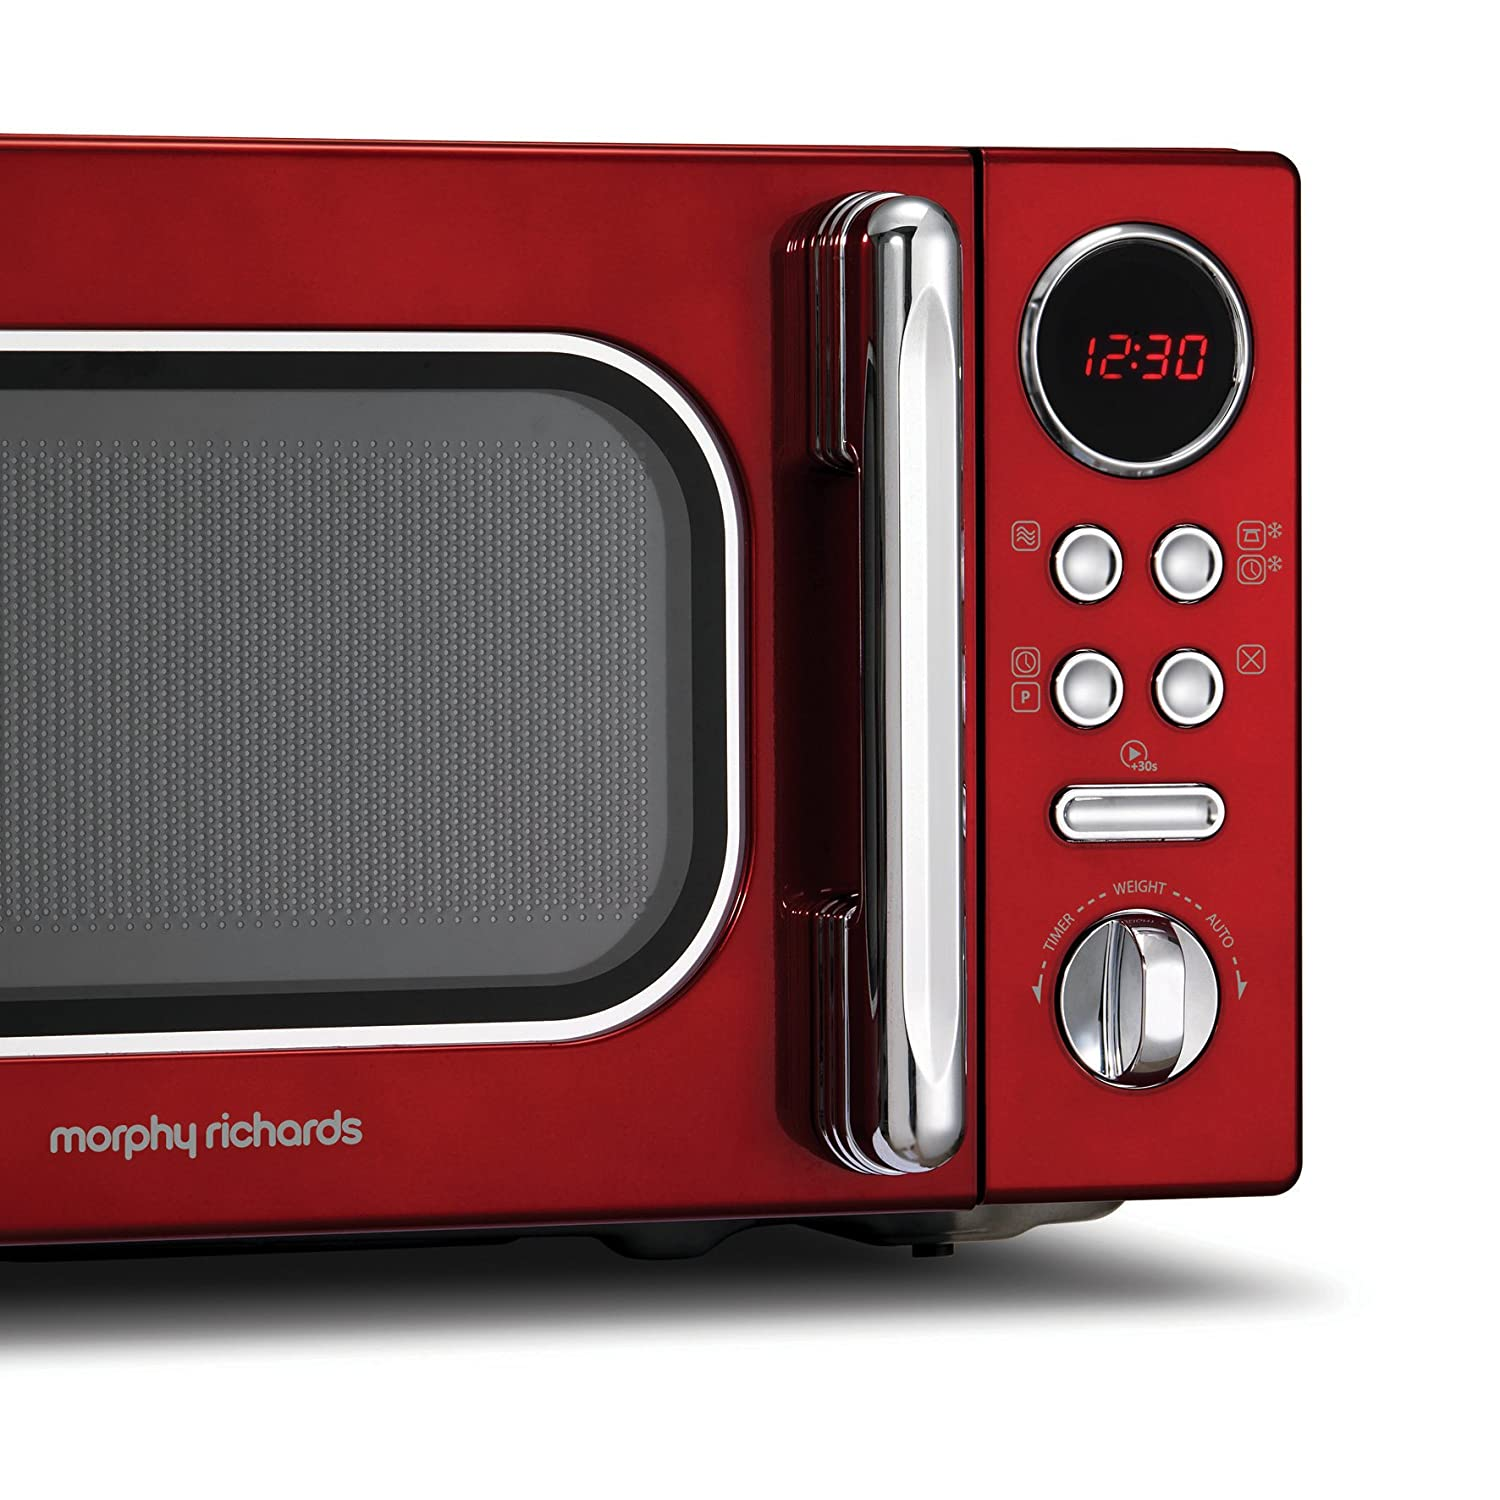 5l accents range only electricals co uk small kitchen appliances - Morphy Richards Accents Colour Collection 511502 20l Digital Solo Microwave Red Amazon Co Uk Kitchen Home